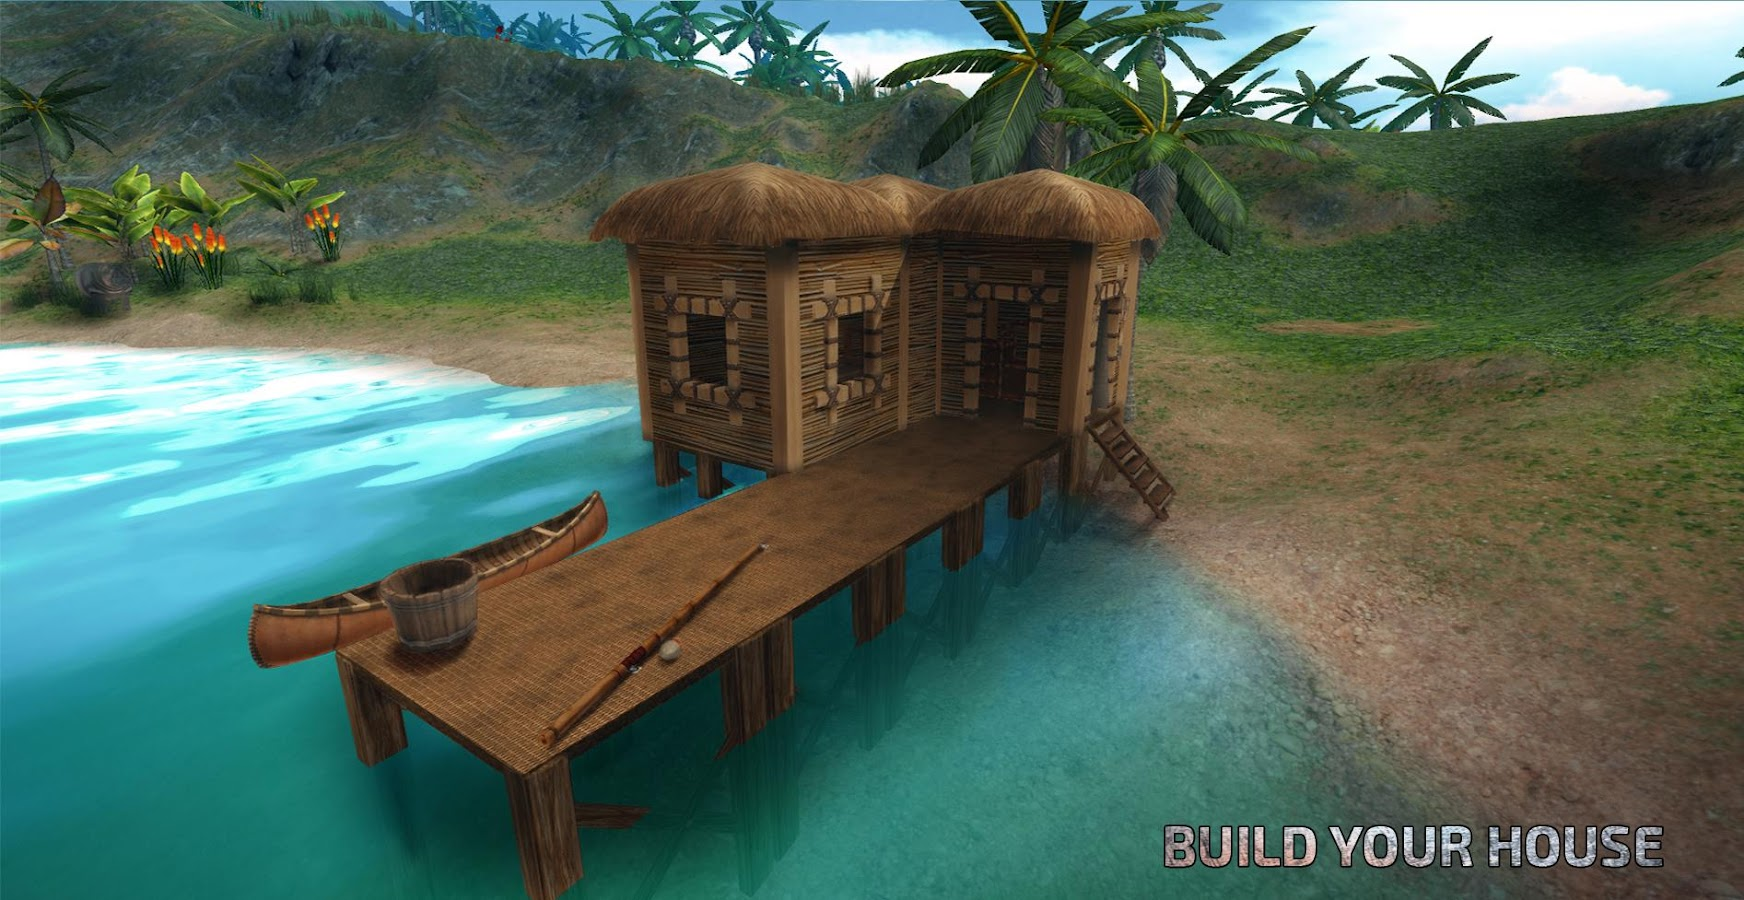 Survival island evolve survivor building home android apps on google play Create a house game